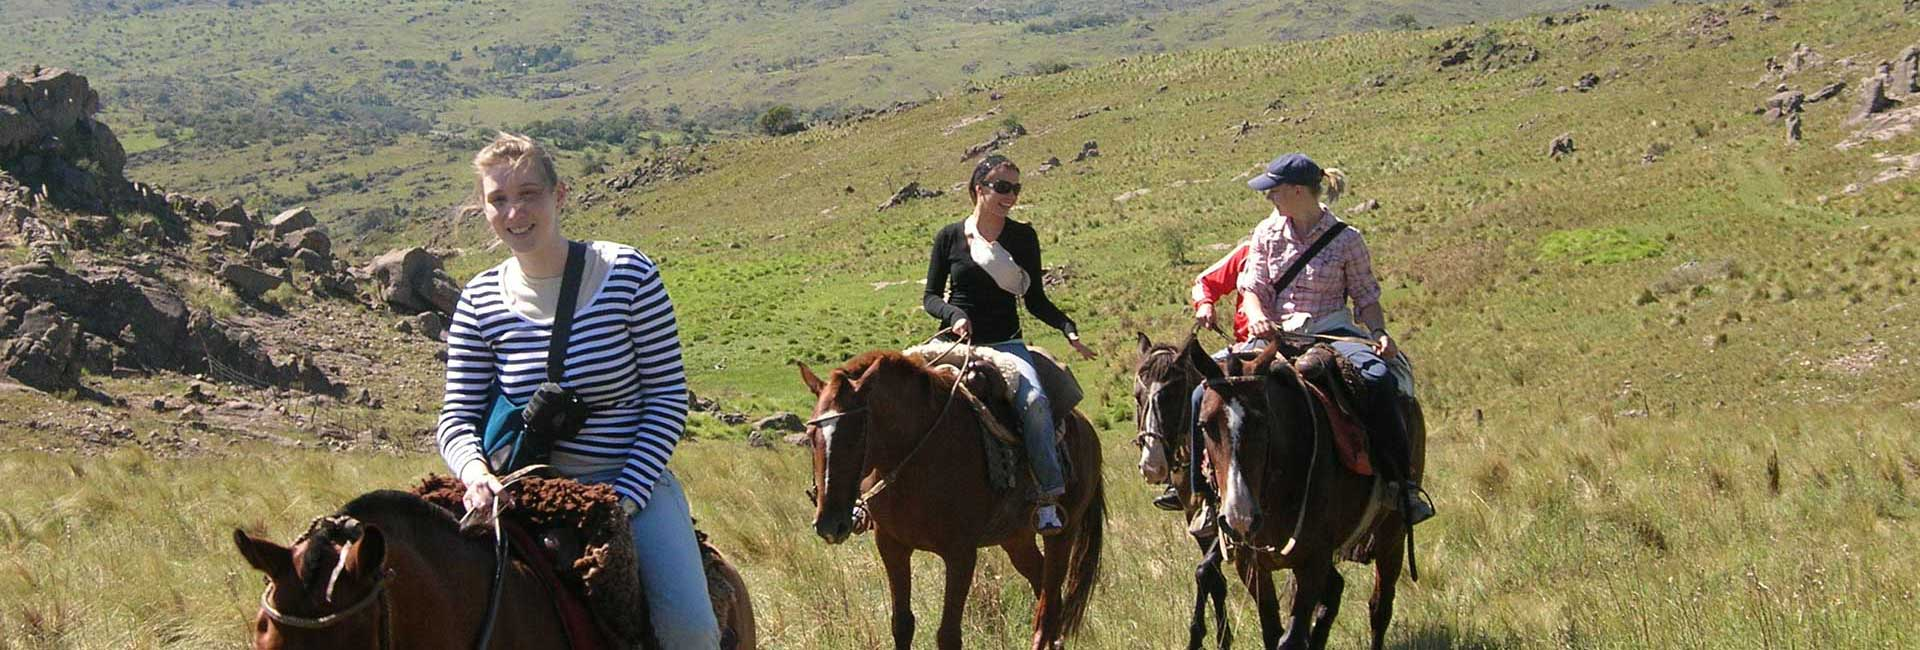 Excursion on a horseback